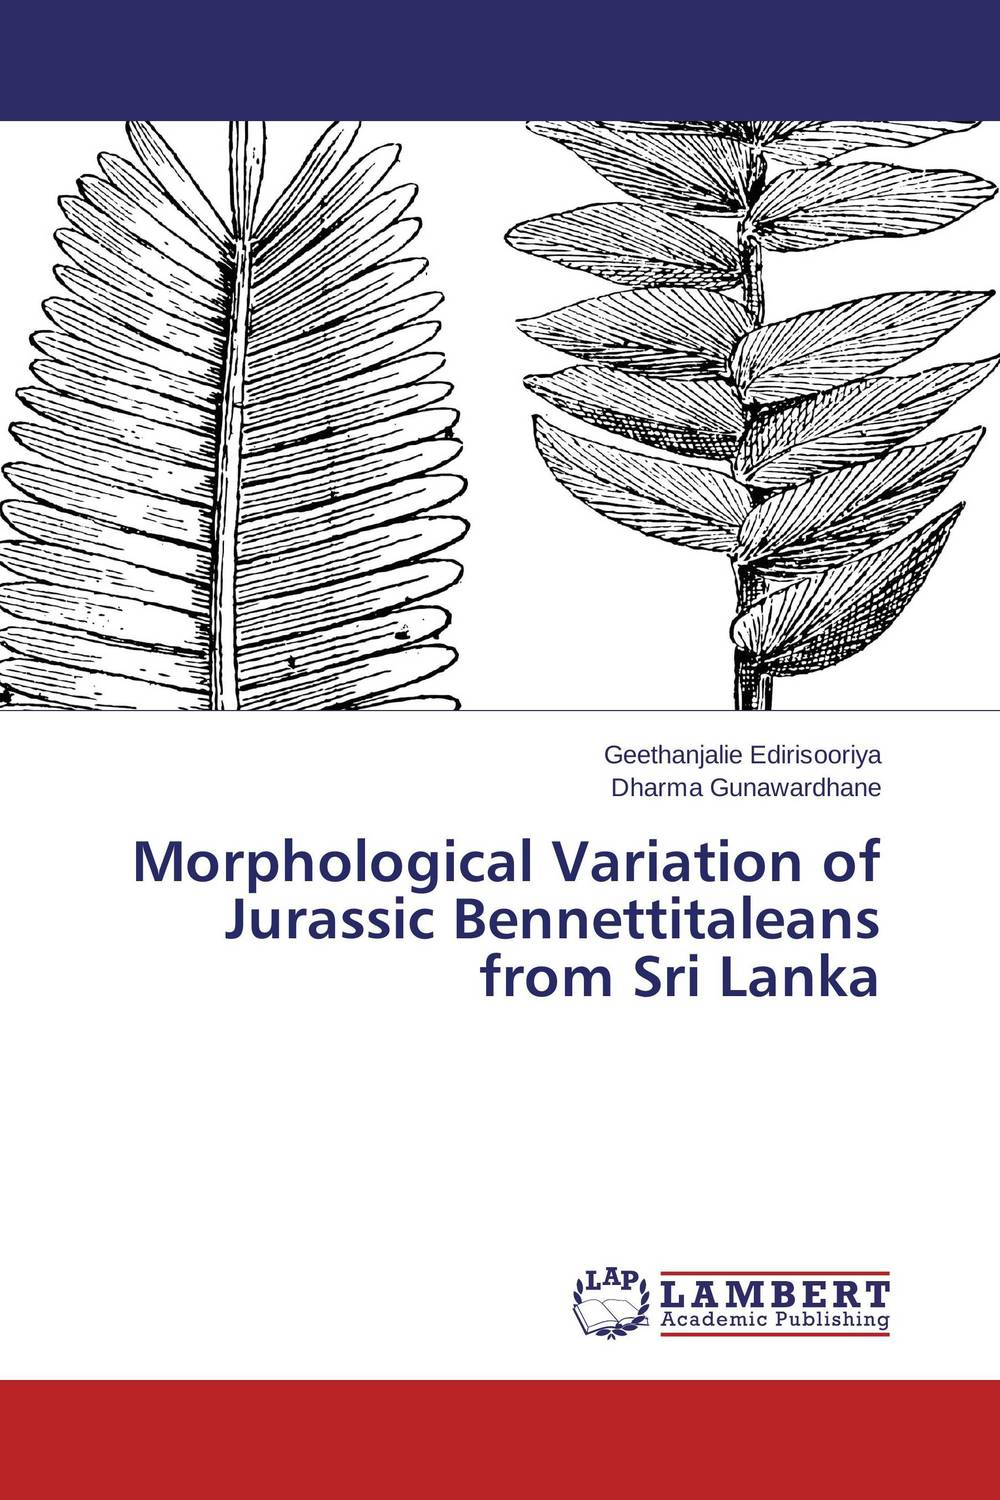 Morphological Variation of Jurassic Bennettitaleans from Sri Lanka morphological variation of jurassic bennettitaleans from sri lanka